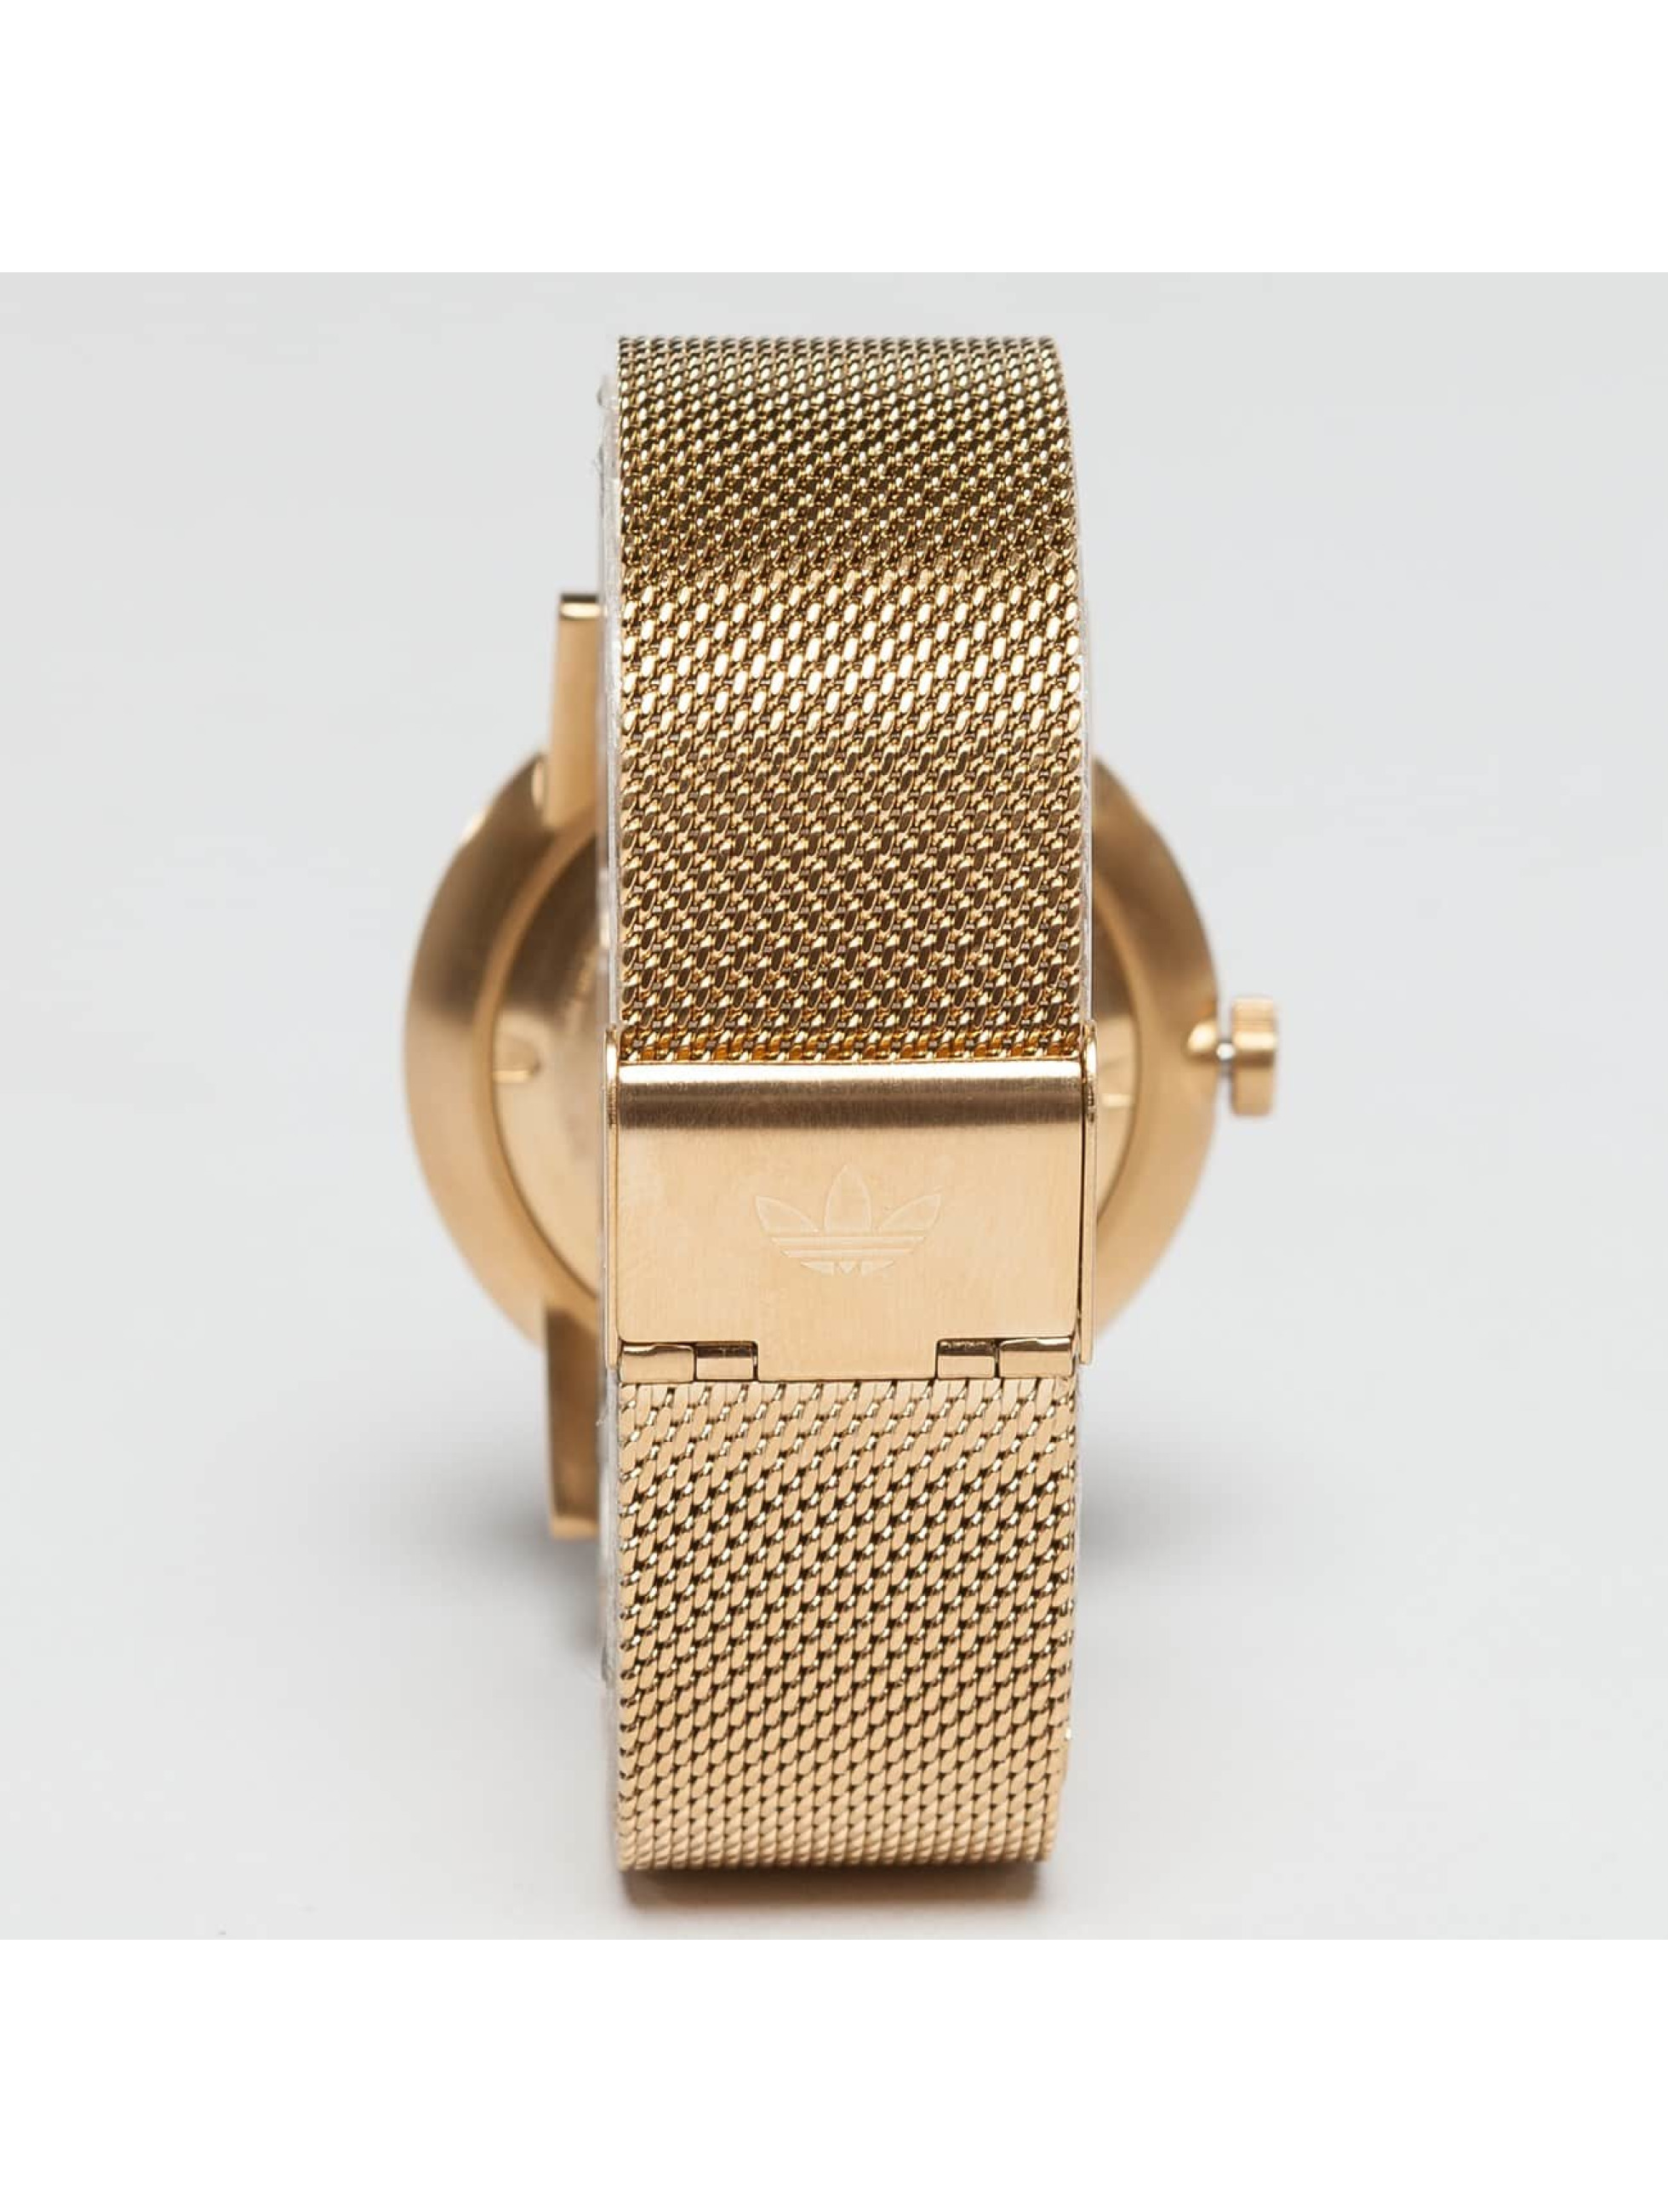 Adidas Watches Zegarki District M1 zloty